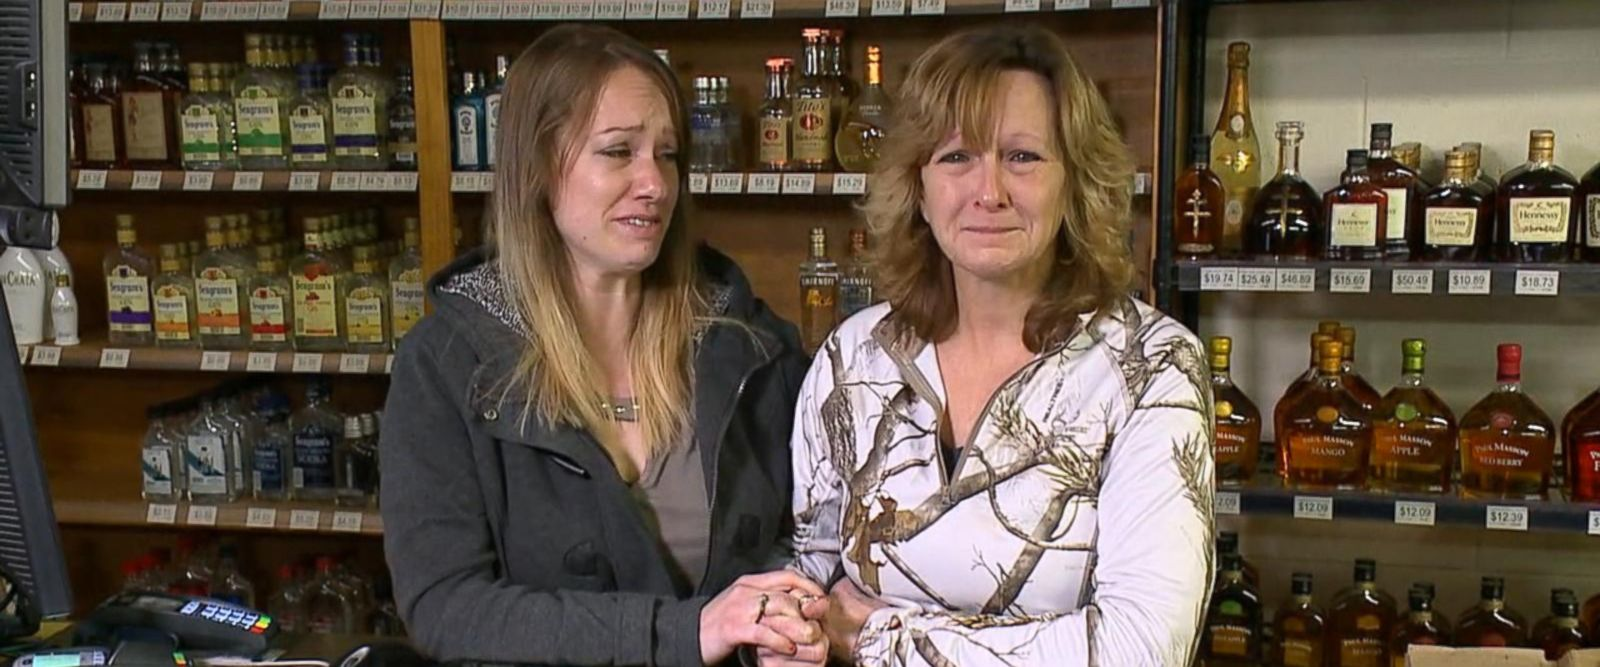 VIDEO: Mother and daughter grabbing their own guns to turn the table on alleged serial robber